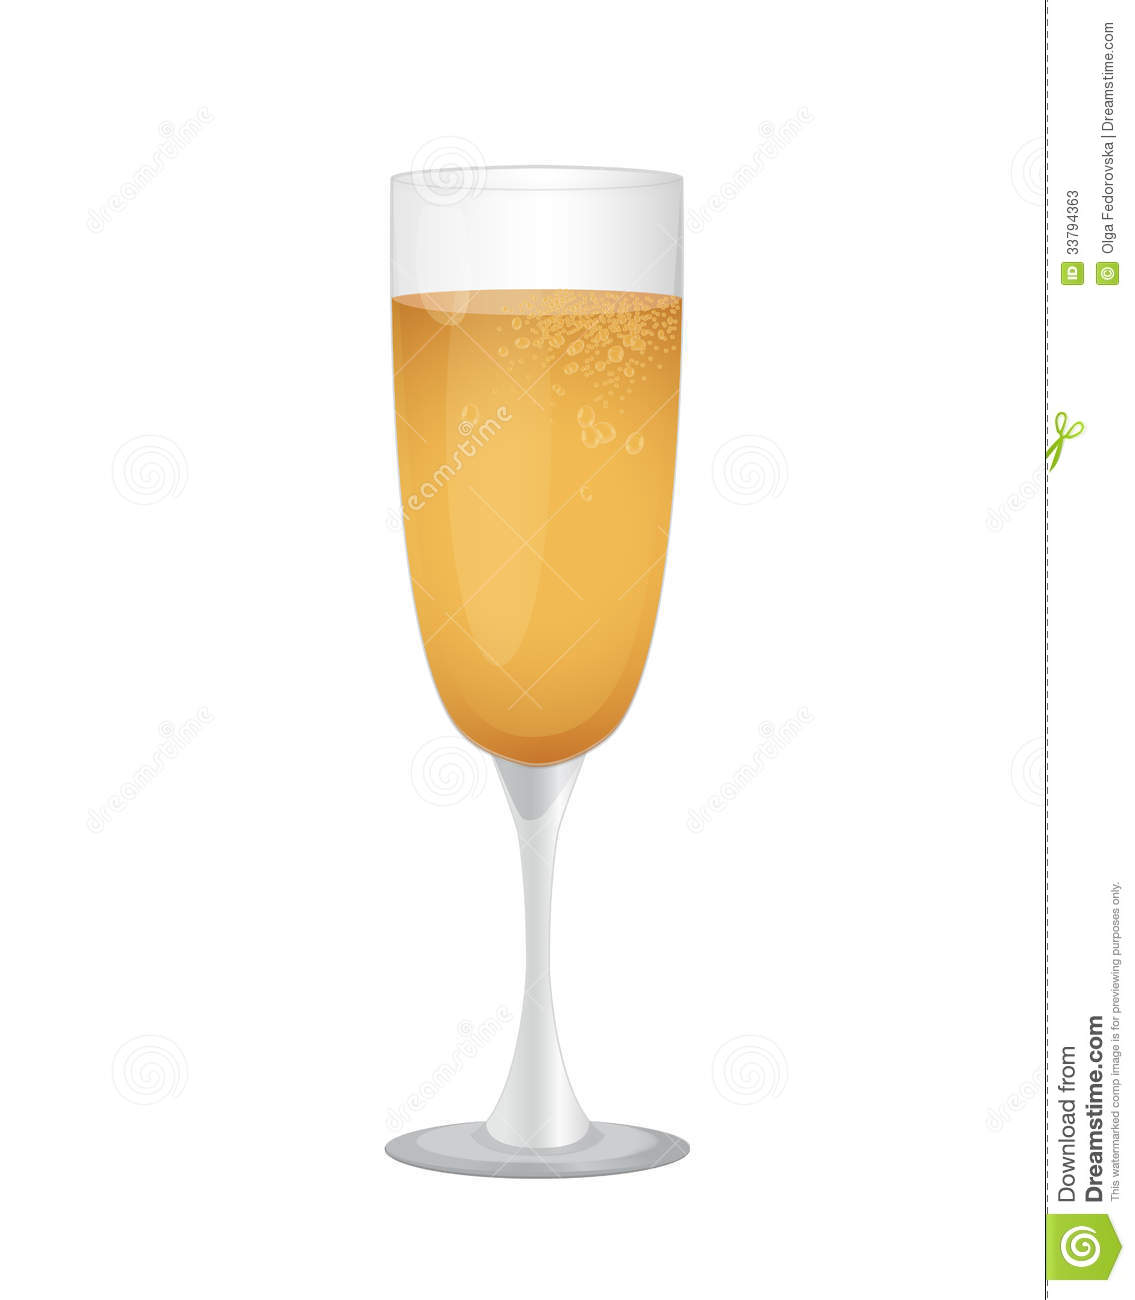 Champagne glass vector clip art. Feel free to use these beautiful ...